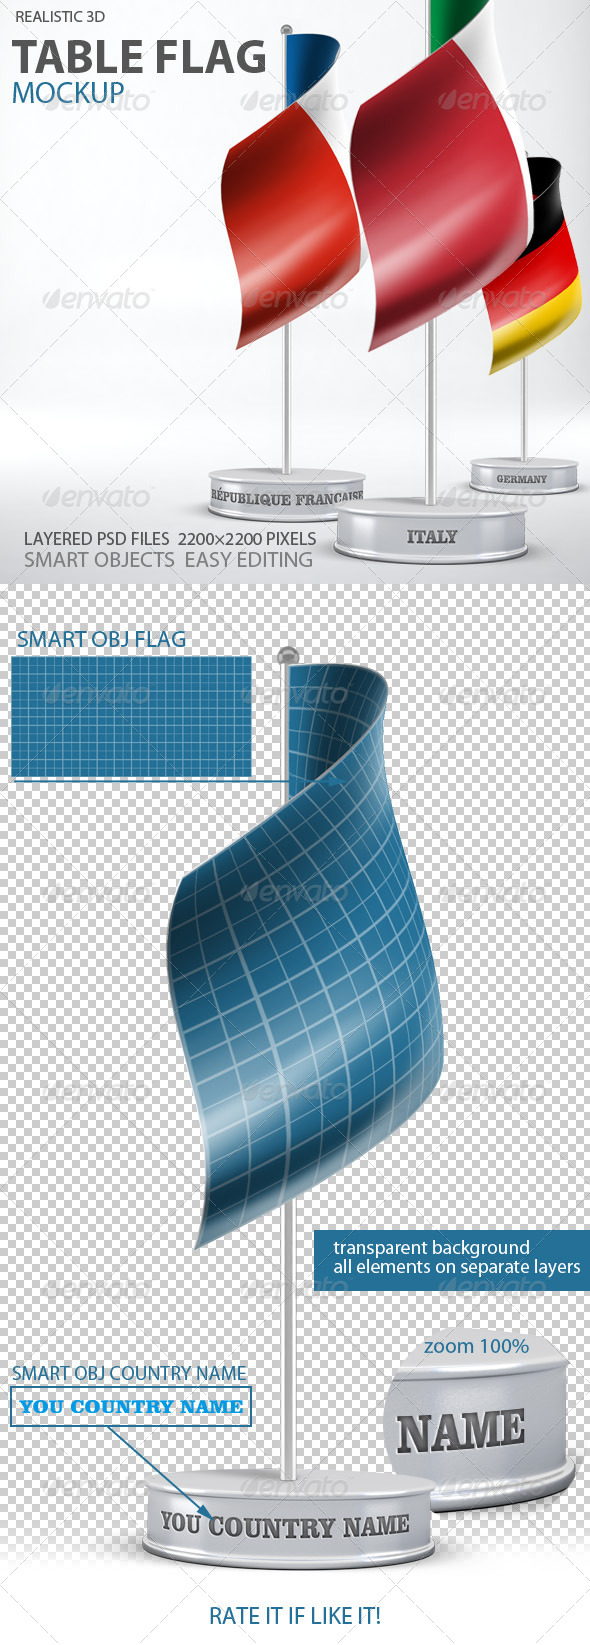 GraphicRiver Table Flag Mockup 7460062